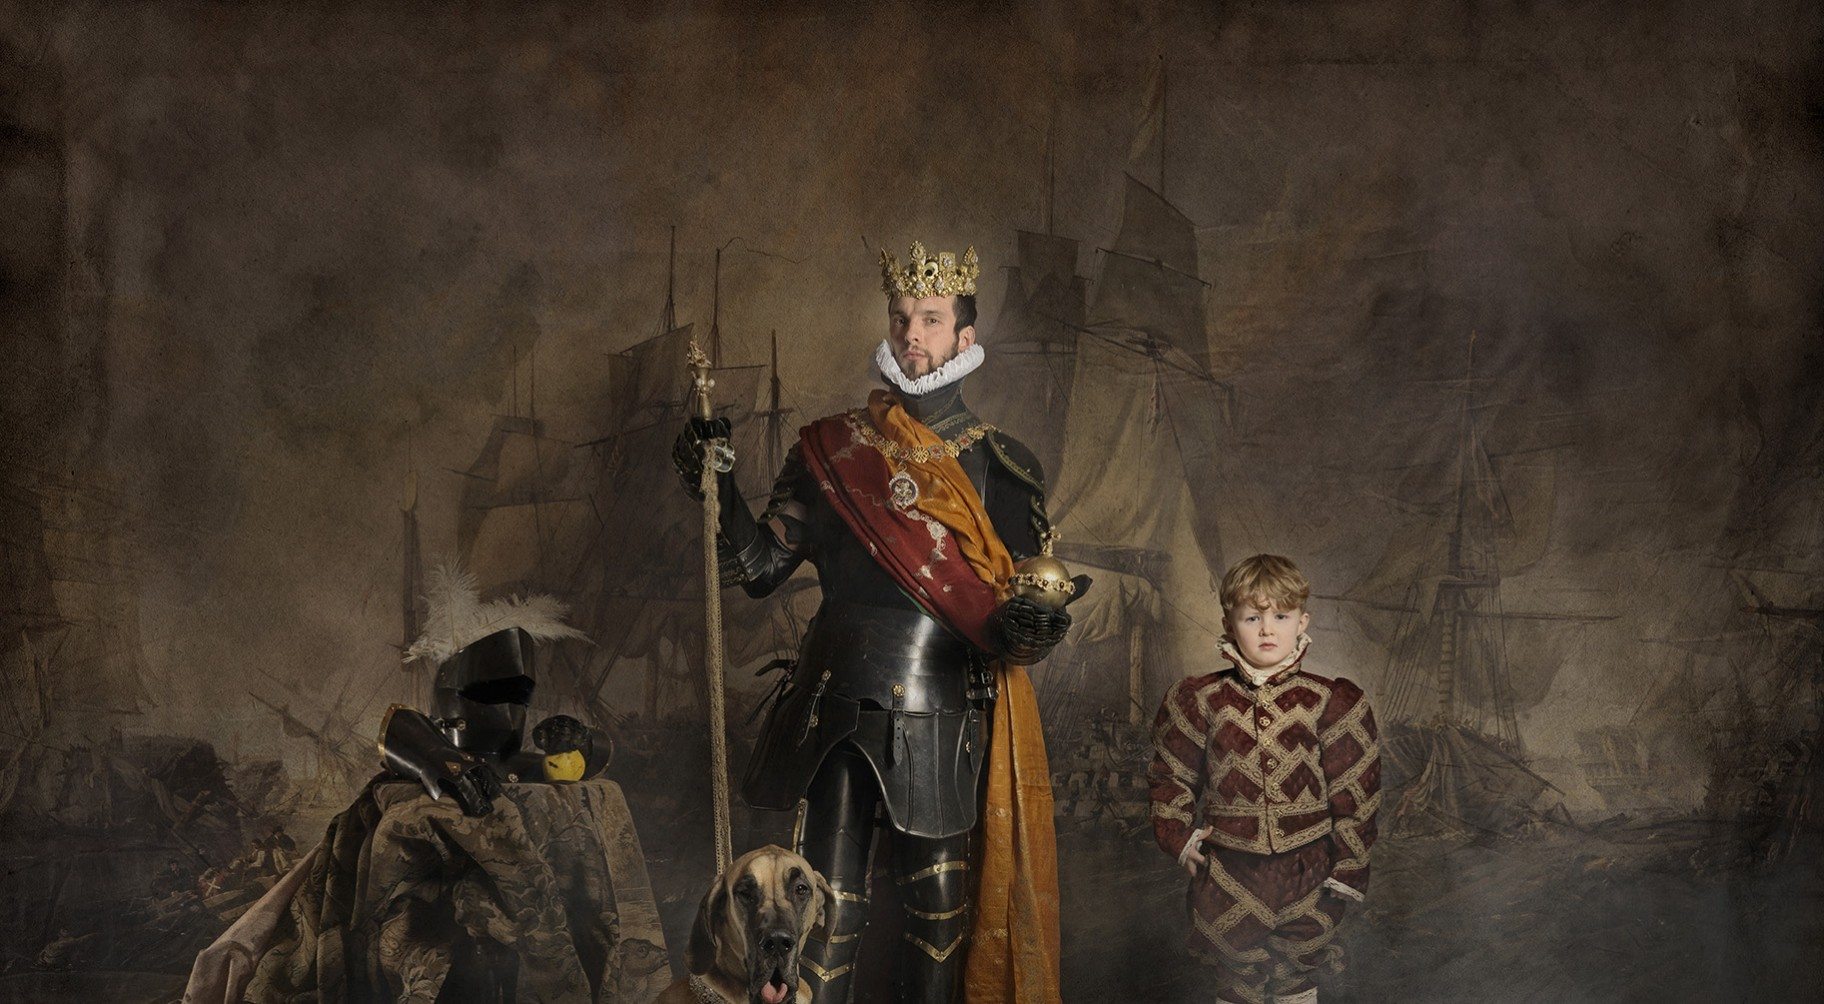 Jim Lyngvild - Frederik II and Christian IV